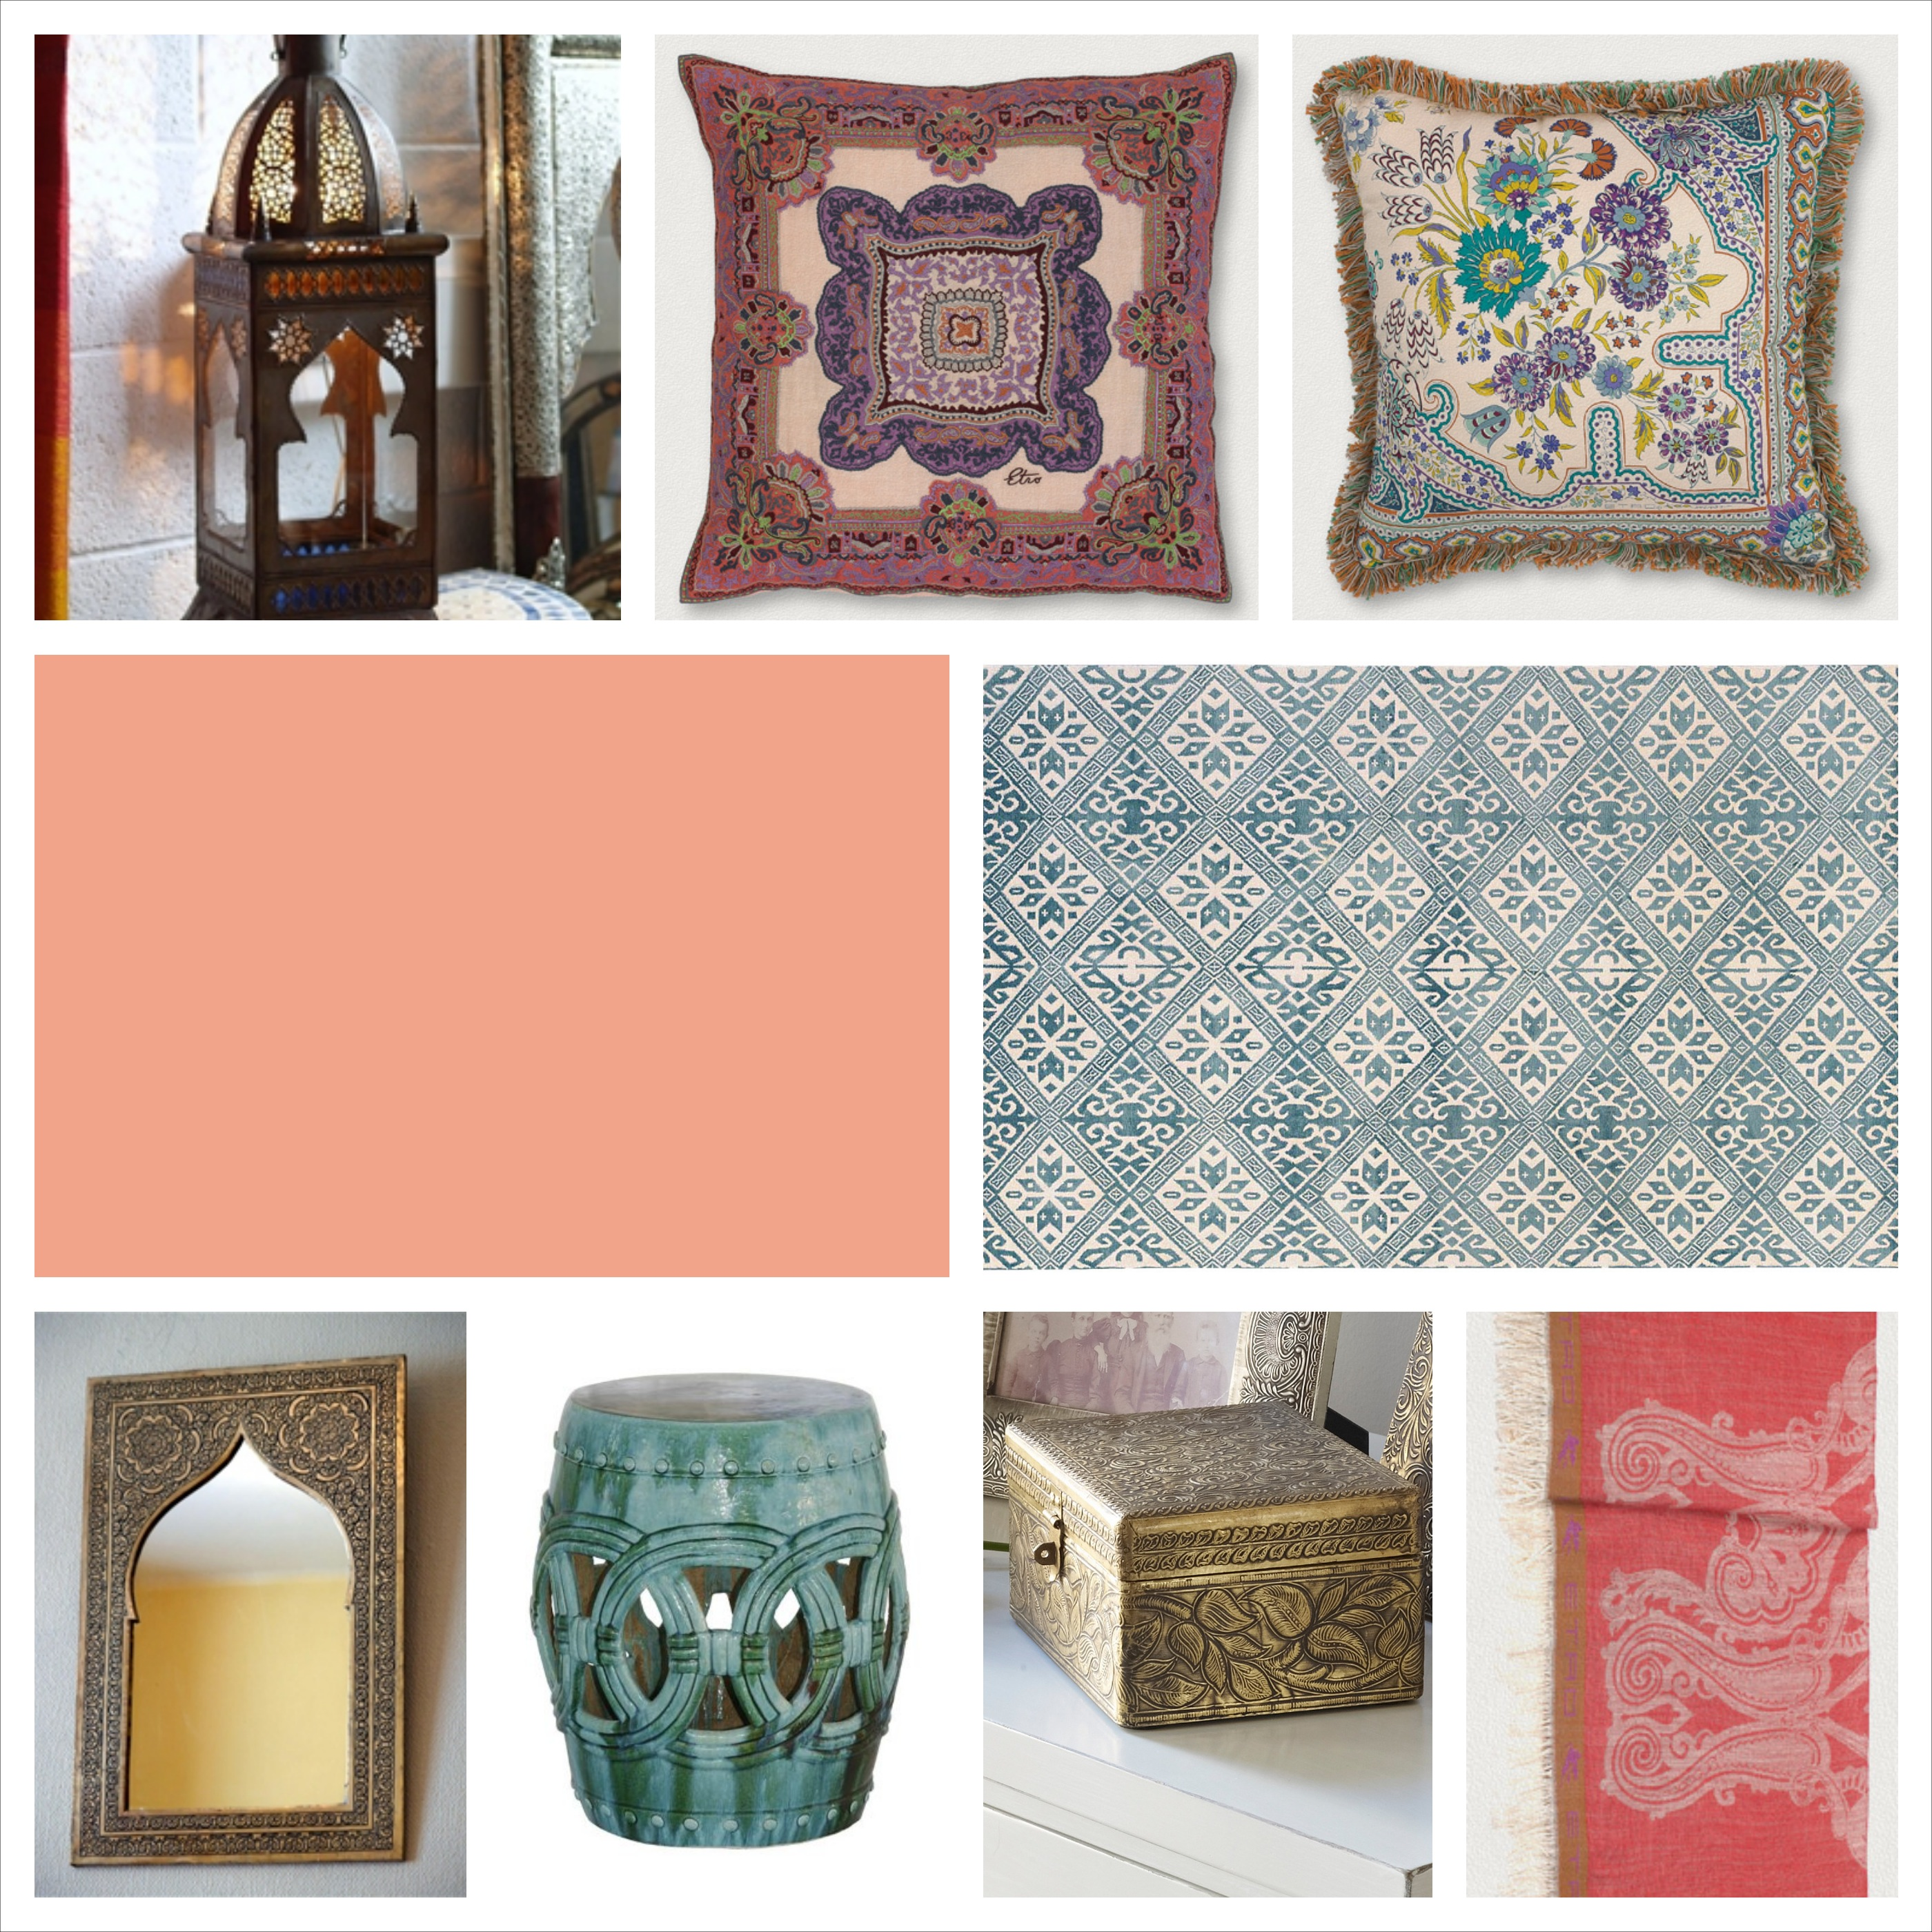 """Lantern and Mirror by Moroccan Decor, Cushions and throw by Etro, paint """"Dusky Rose"""" by Benjamin Moore, Rug by Luke Irwin, Garden ceramic stool, box by Lombok"""